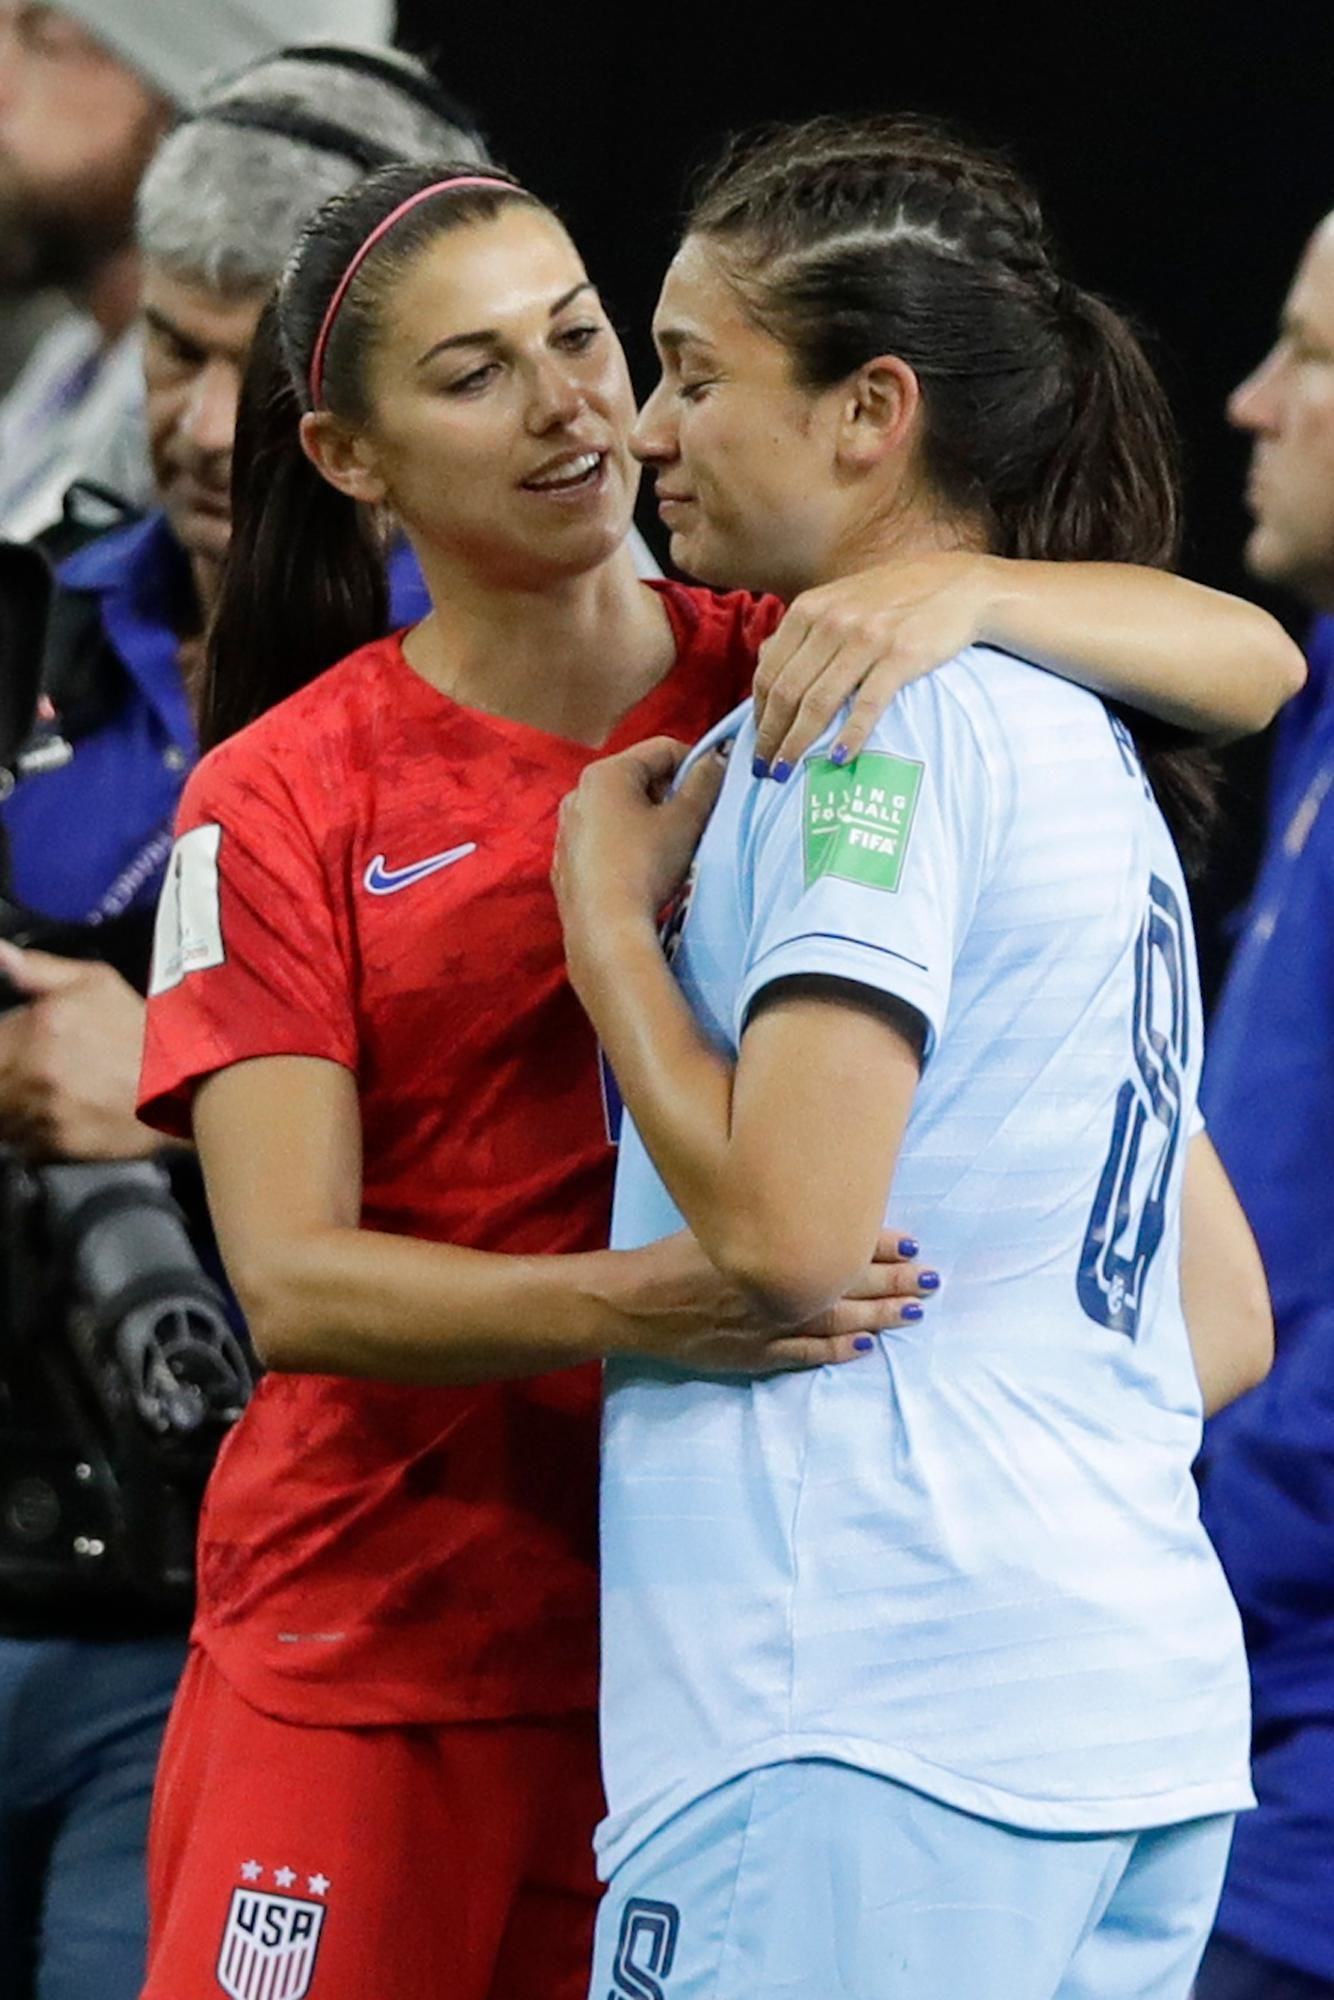 United States'Alex Morgan hugs Thailand's Miranda Nild at the end of the Women's World Cup Group F soccer match between United States and Thailand at the Stade Auguste-Delaune in Reims, France, Tuesday, June 11, 2019. United States beat Thailand 13-0. (AP Photo/Alessandra Tarantino)